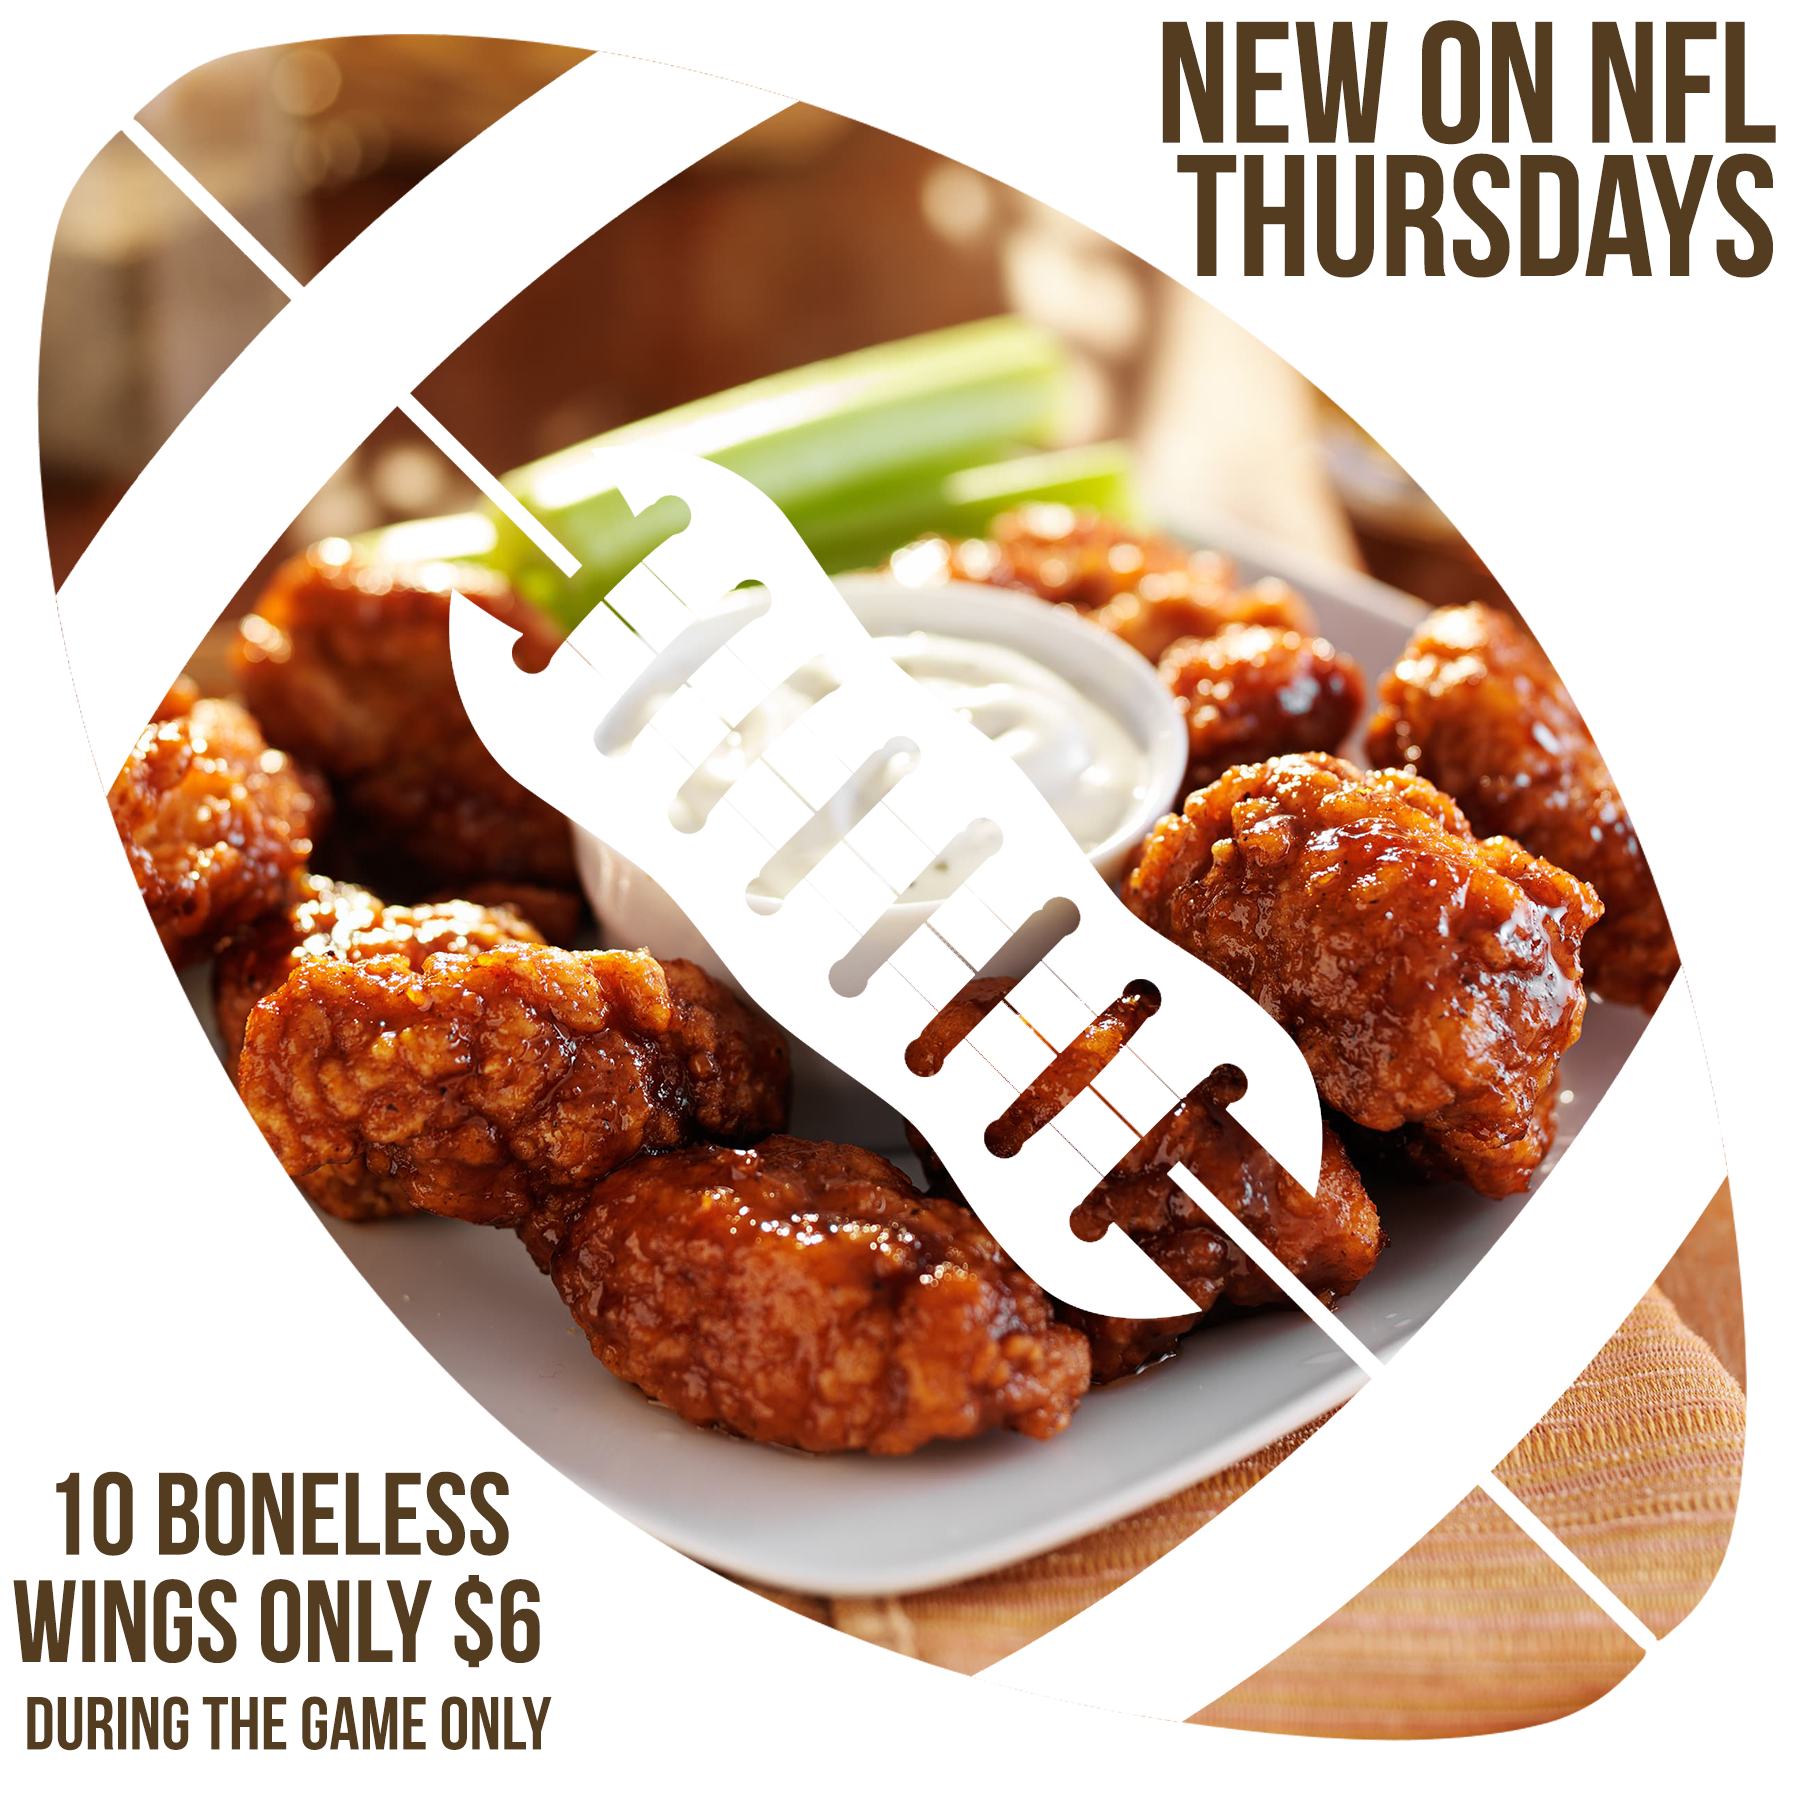 New on NFL Thursdays. 10 boneless wings only $6. During the game only.